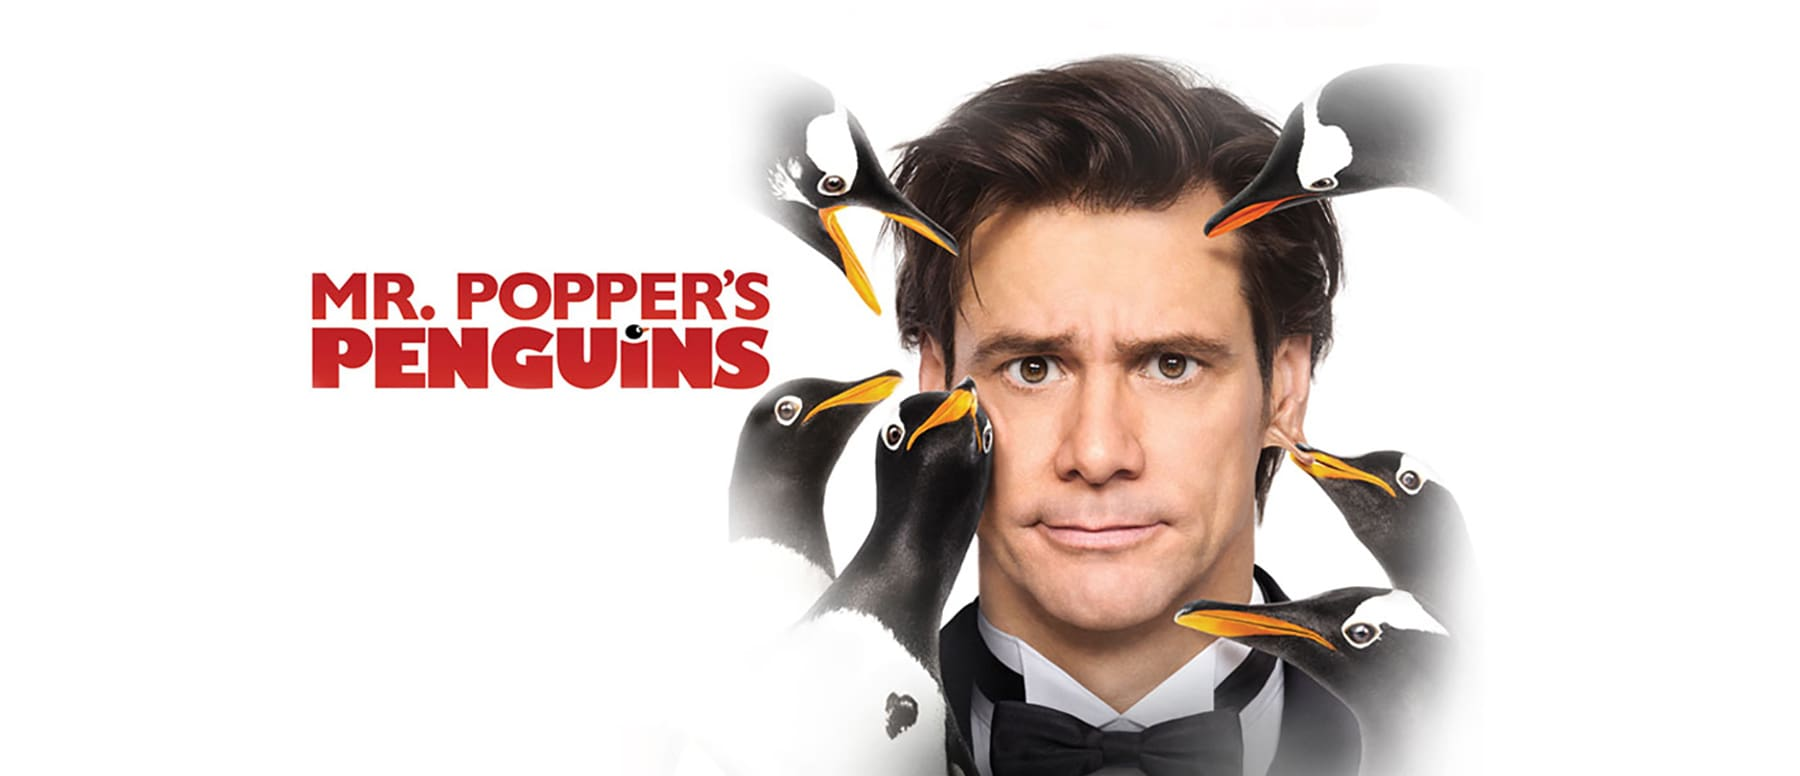 Mr. Popper's Penguins Hero